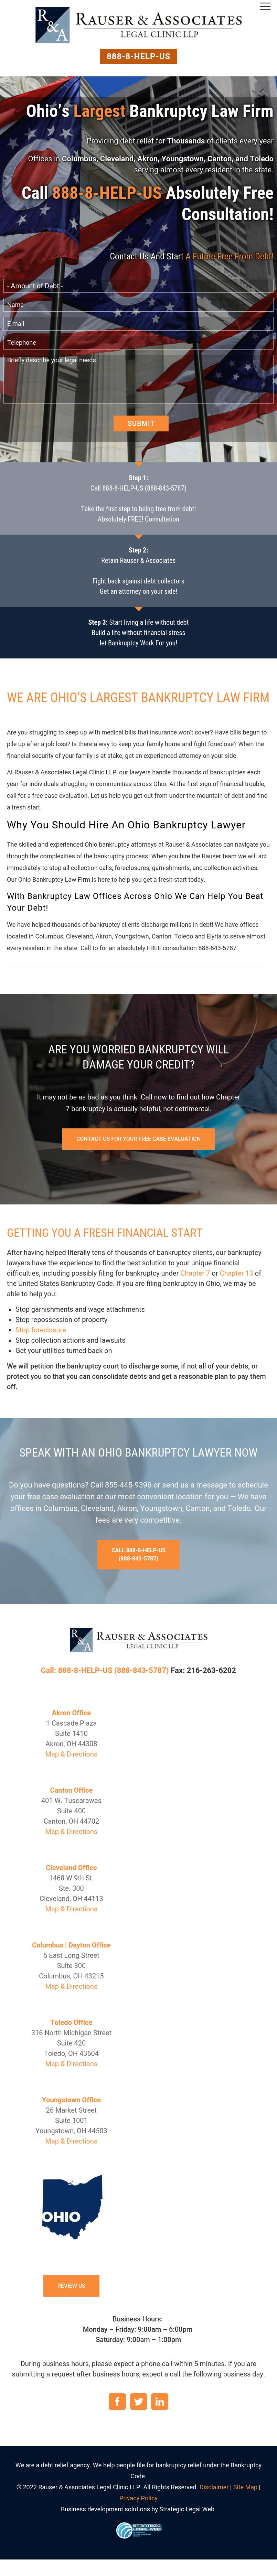 Rauser And Associates - Cleveland OH Lawyers